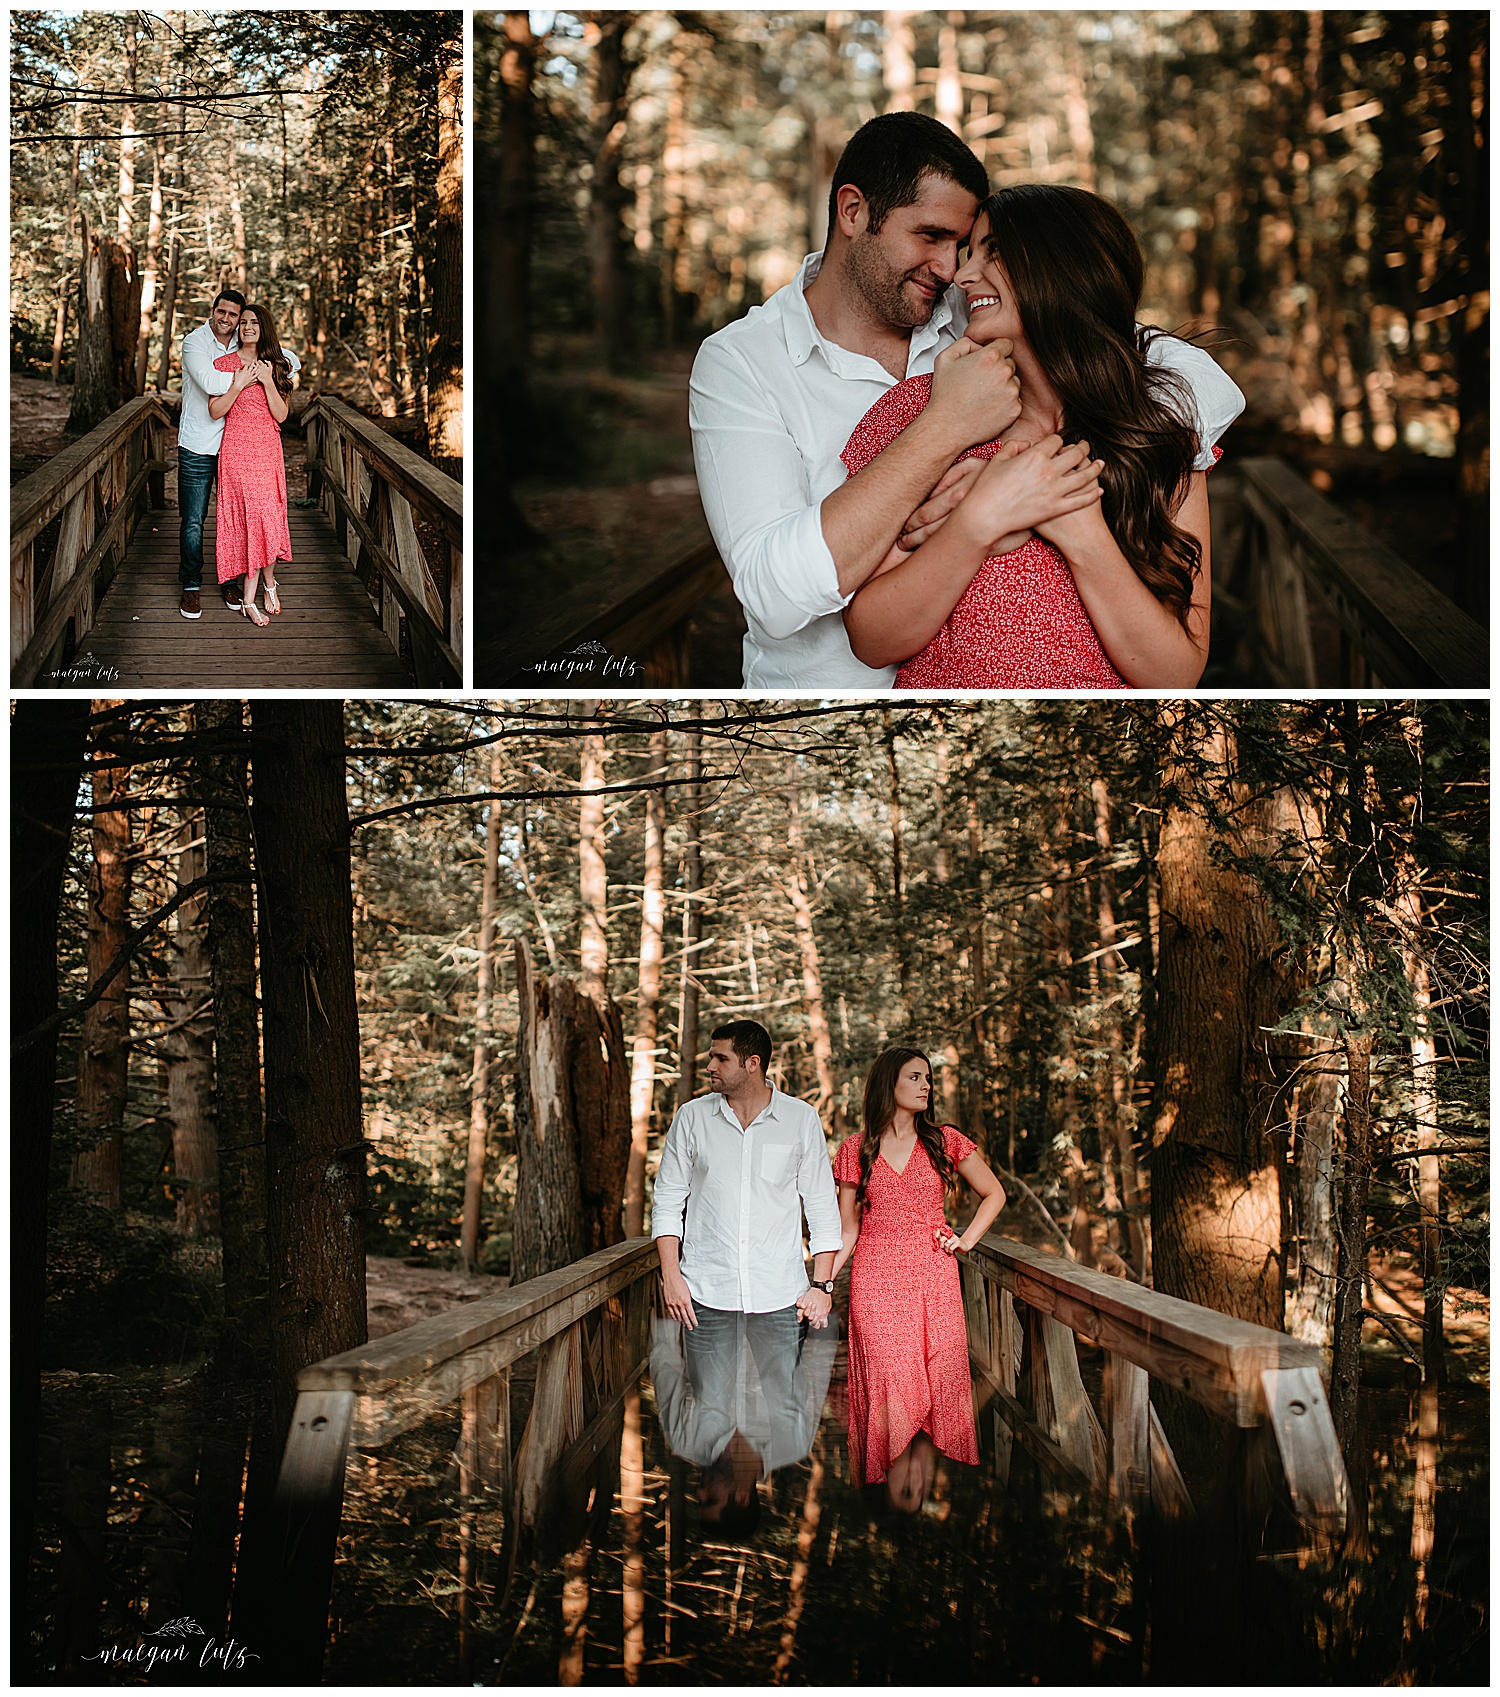 NEPA-Mount-Pocono-Lehigh-Valley-Wedding-Engagement-photographer-at-Hickory-Run-State-Park-Whitehaven-PA_0003.jpg